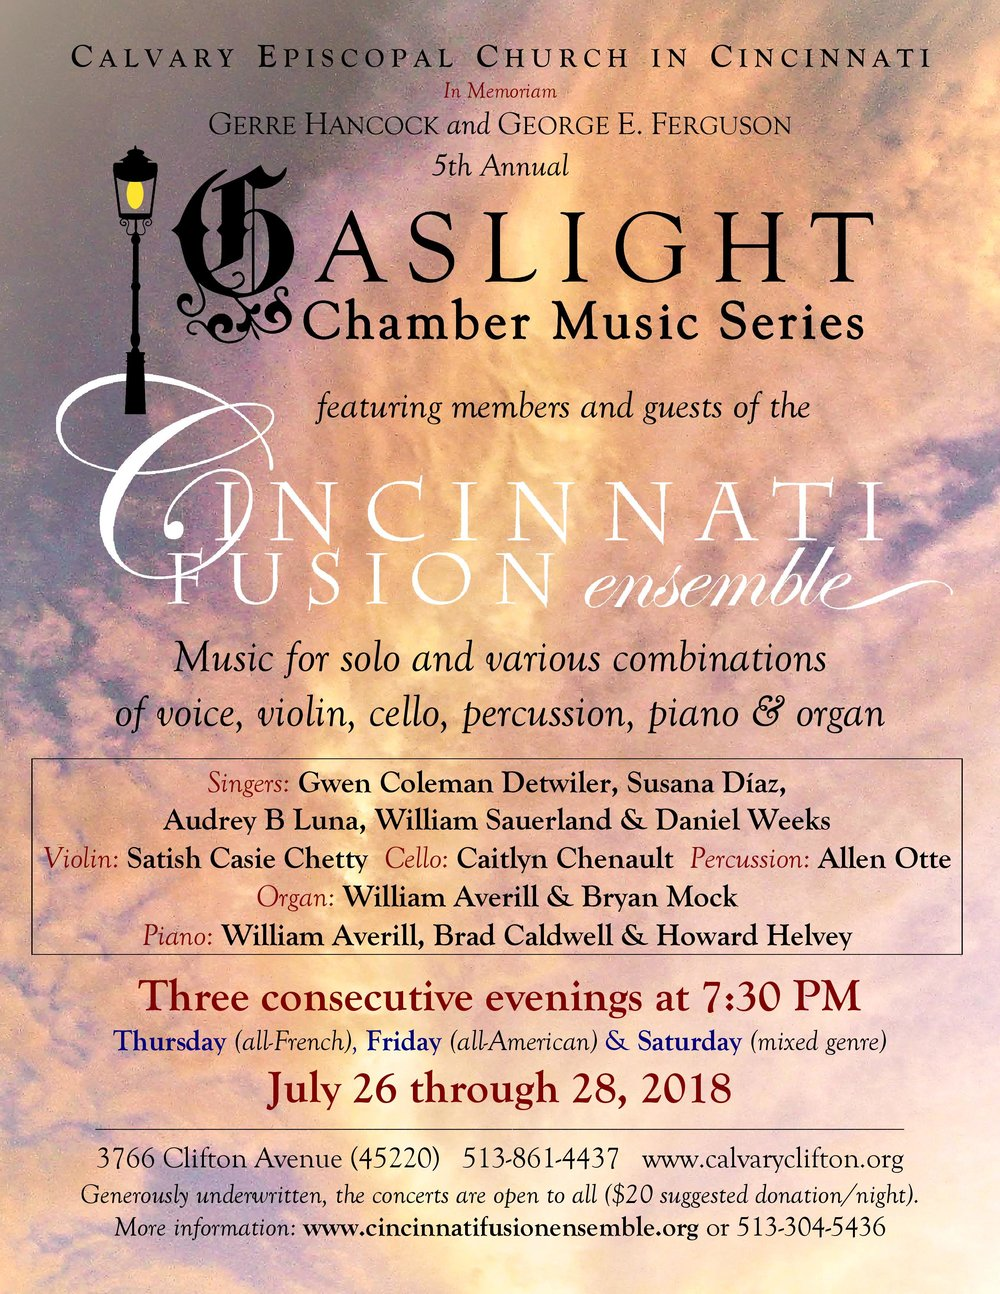 Gaslight Chamber Music Series 2018 POSTER.jpg